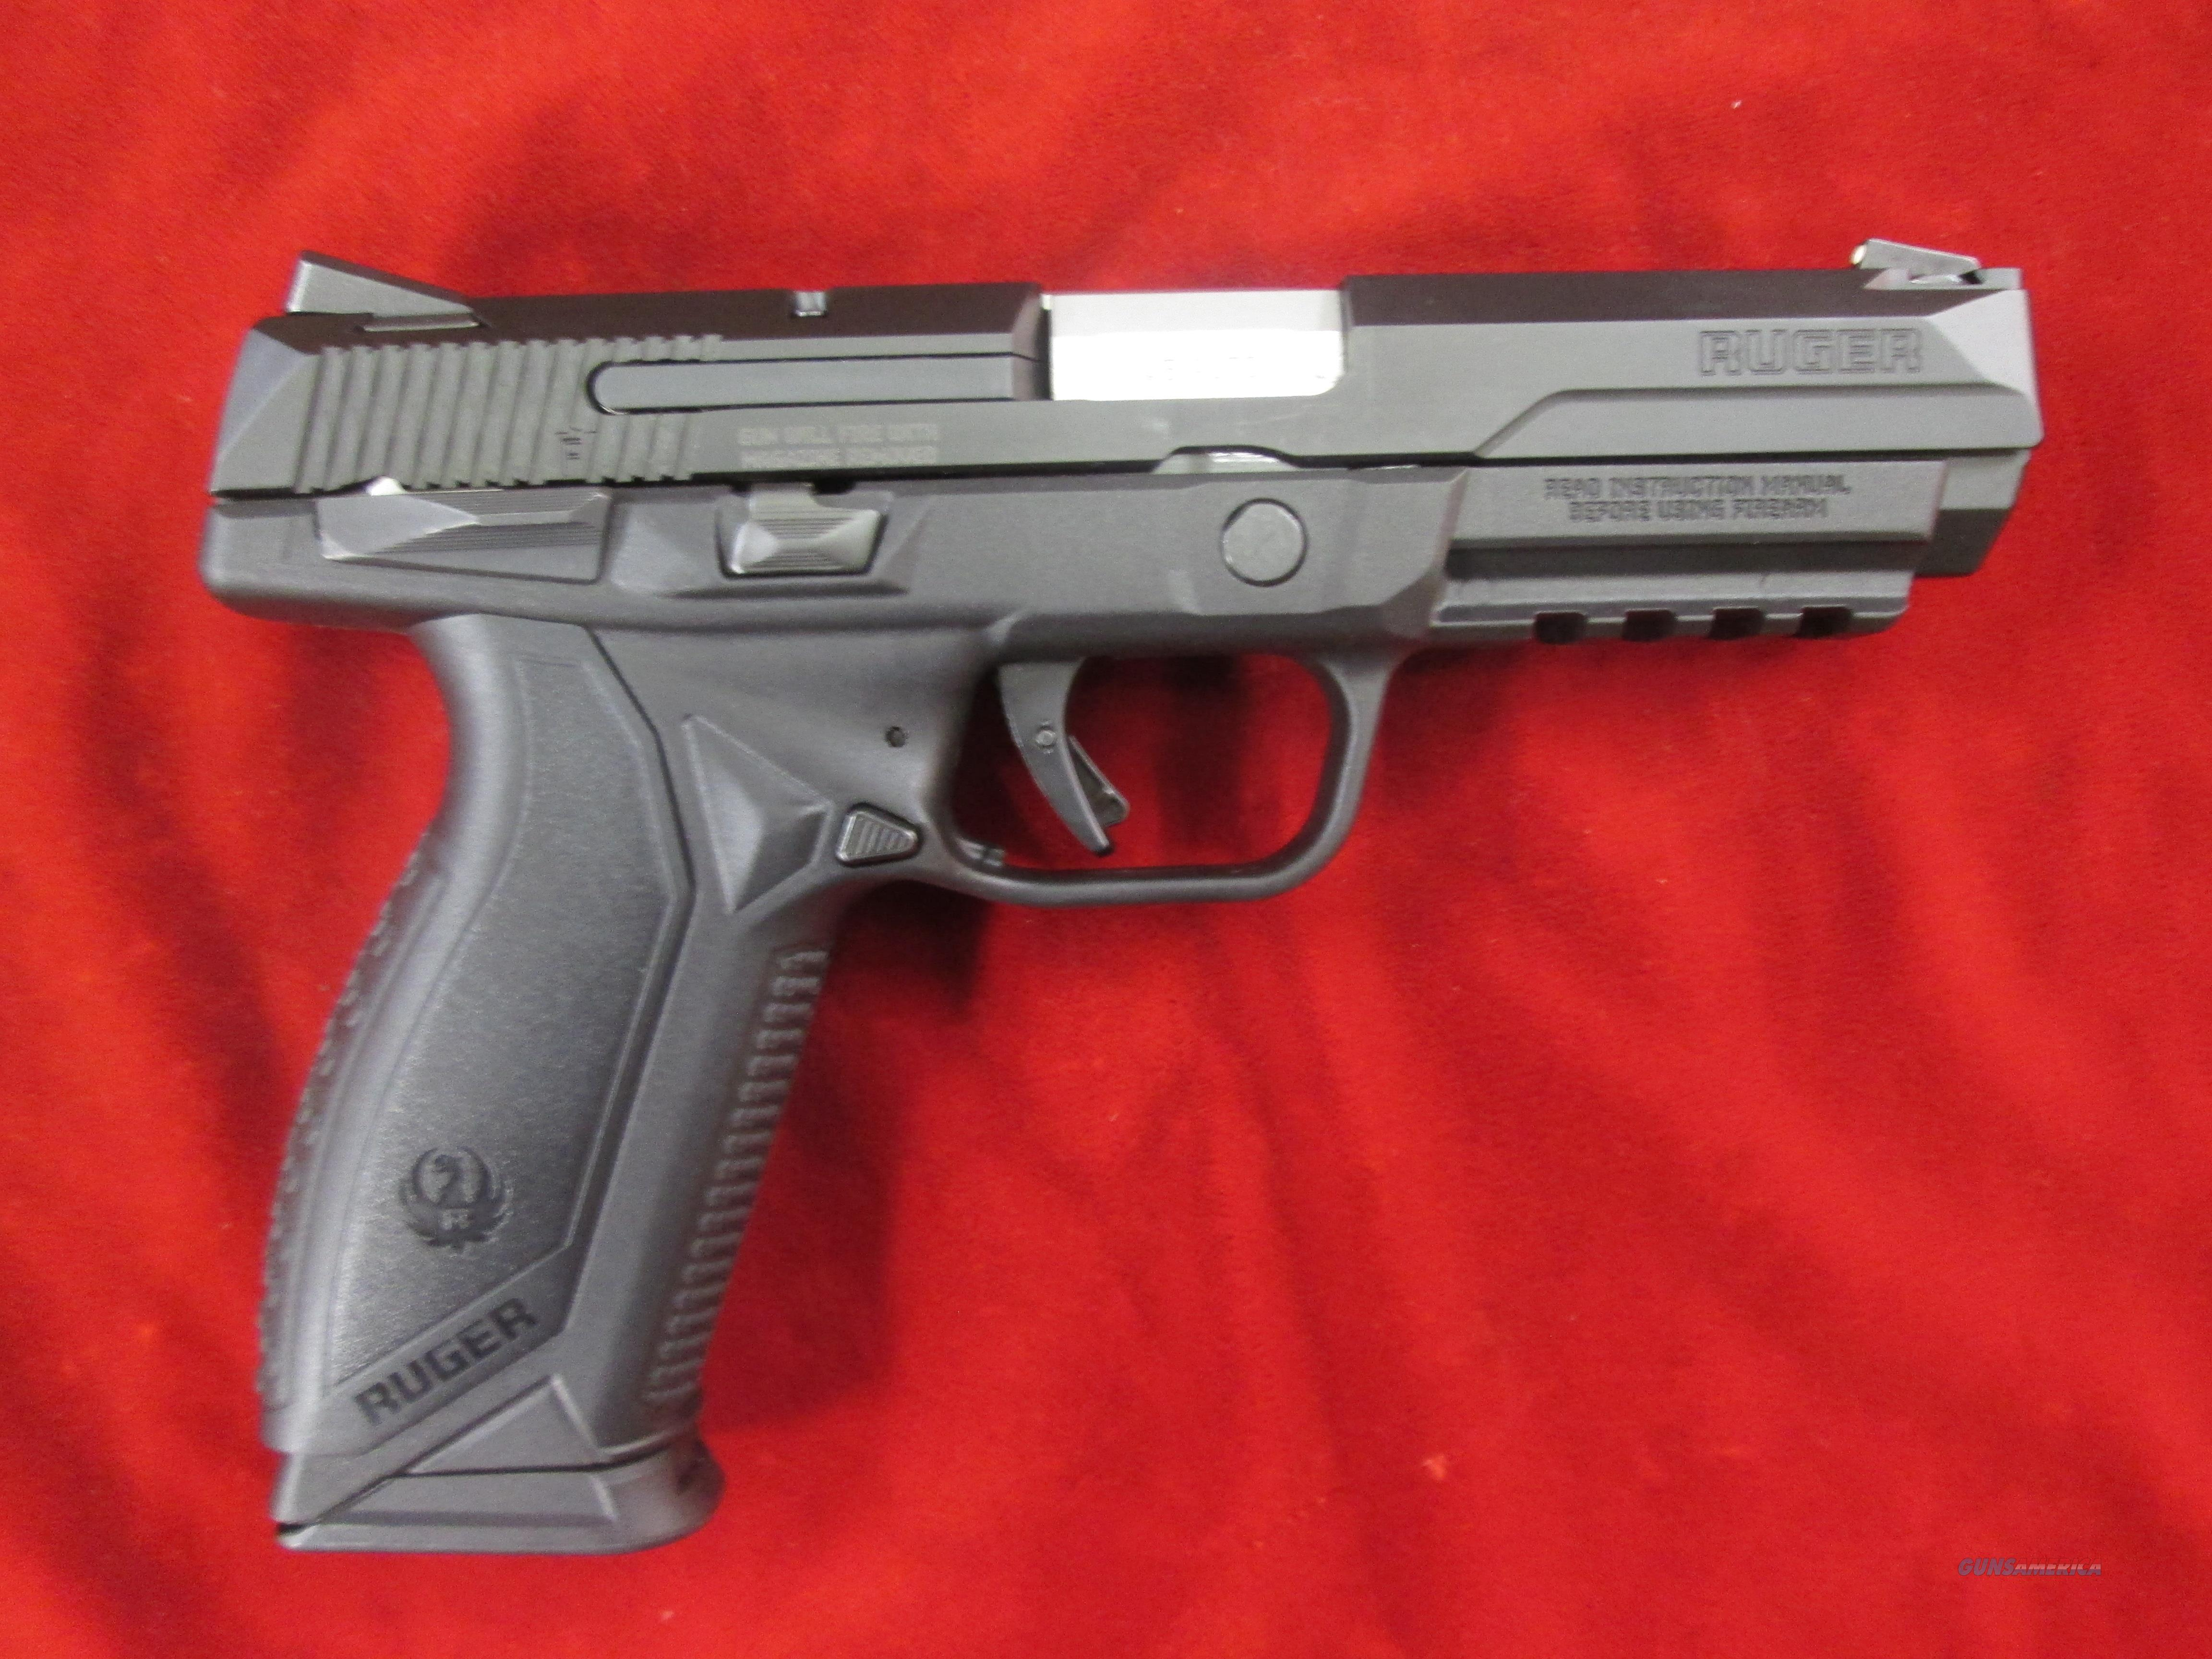 RUGER AMERICAN PISTOL 45ACP BLACK NITRIDE W/ MANUAL SAFETY NEW (08618)   Guns > Pistols > Ruger Semi-Auto Pistols > American Pistol